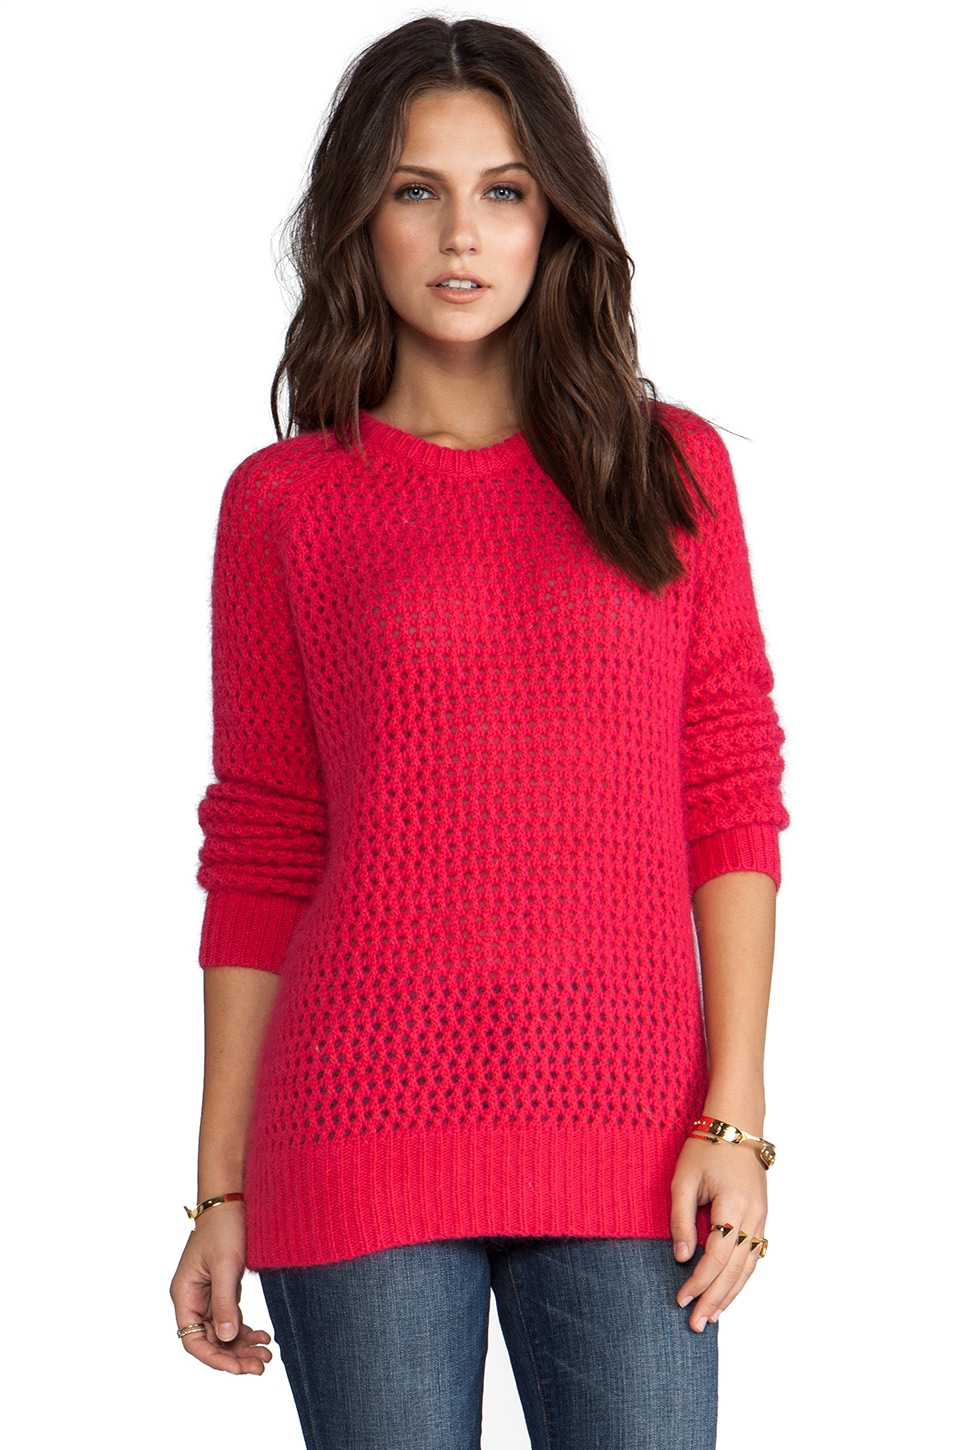 SHAE Long Sleeve Open Stitch Fuzzy Sweater in Rhubarb